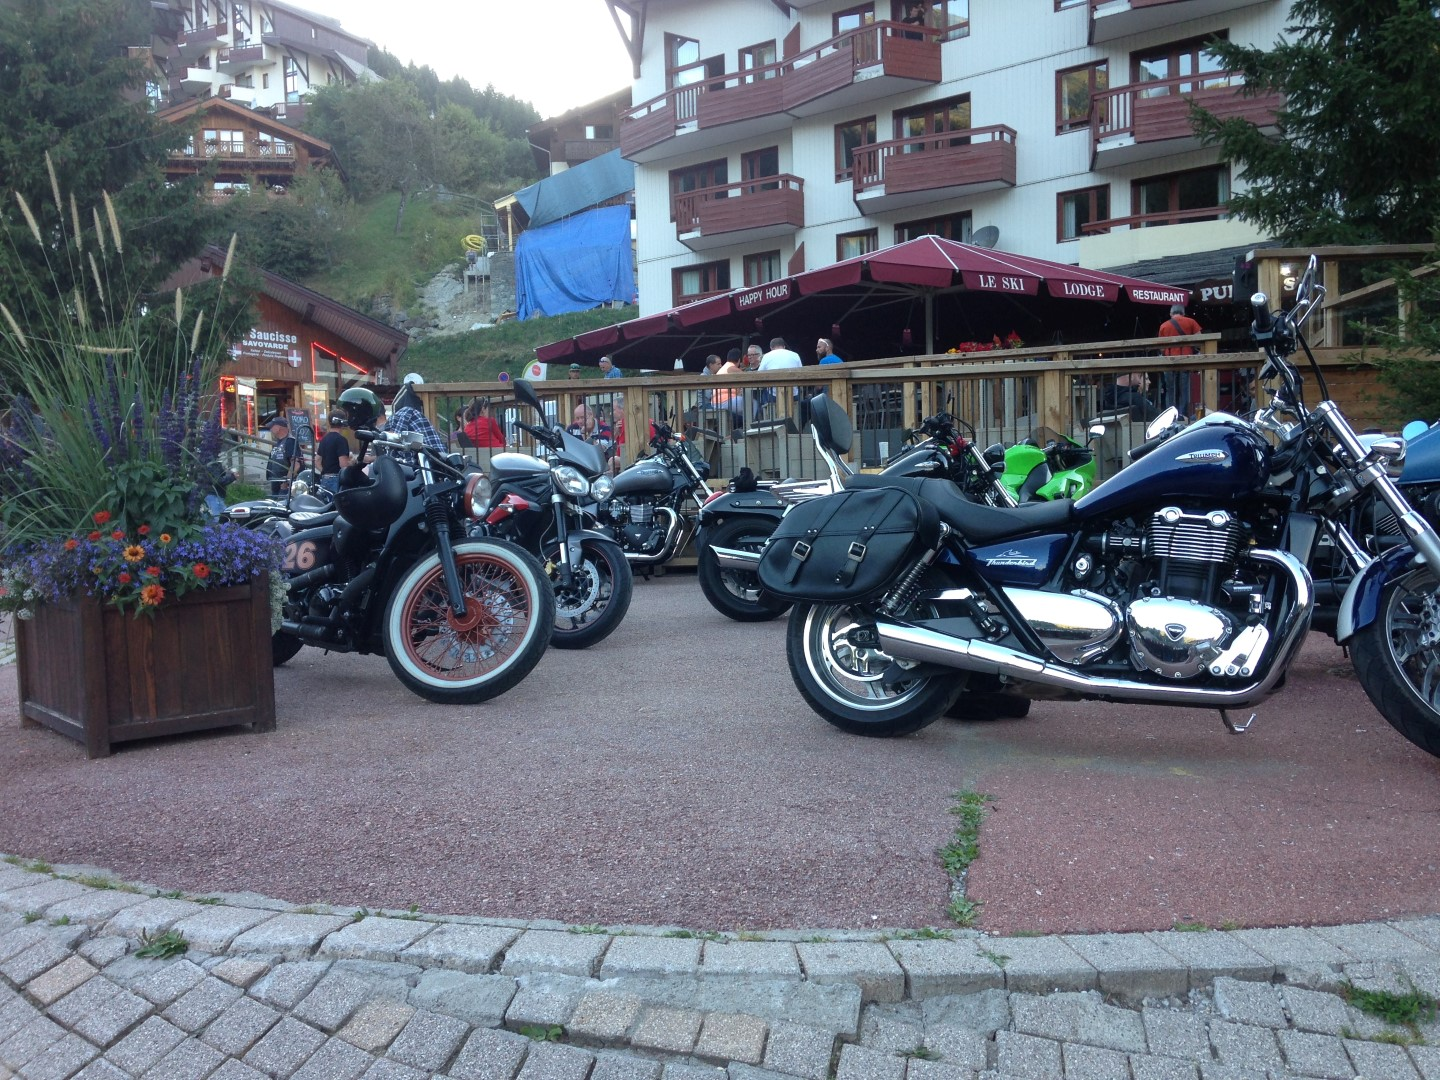 Bikes Parked Bourg St Maurice